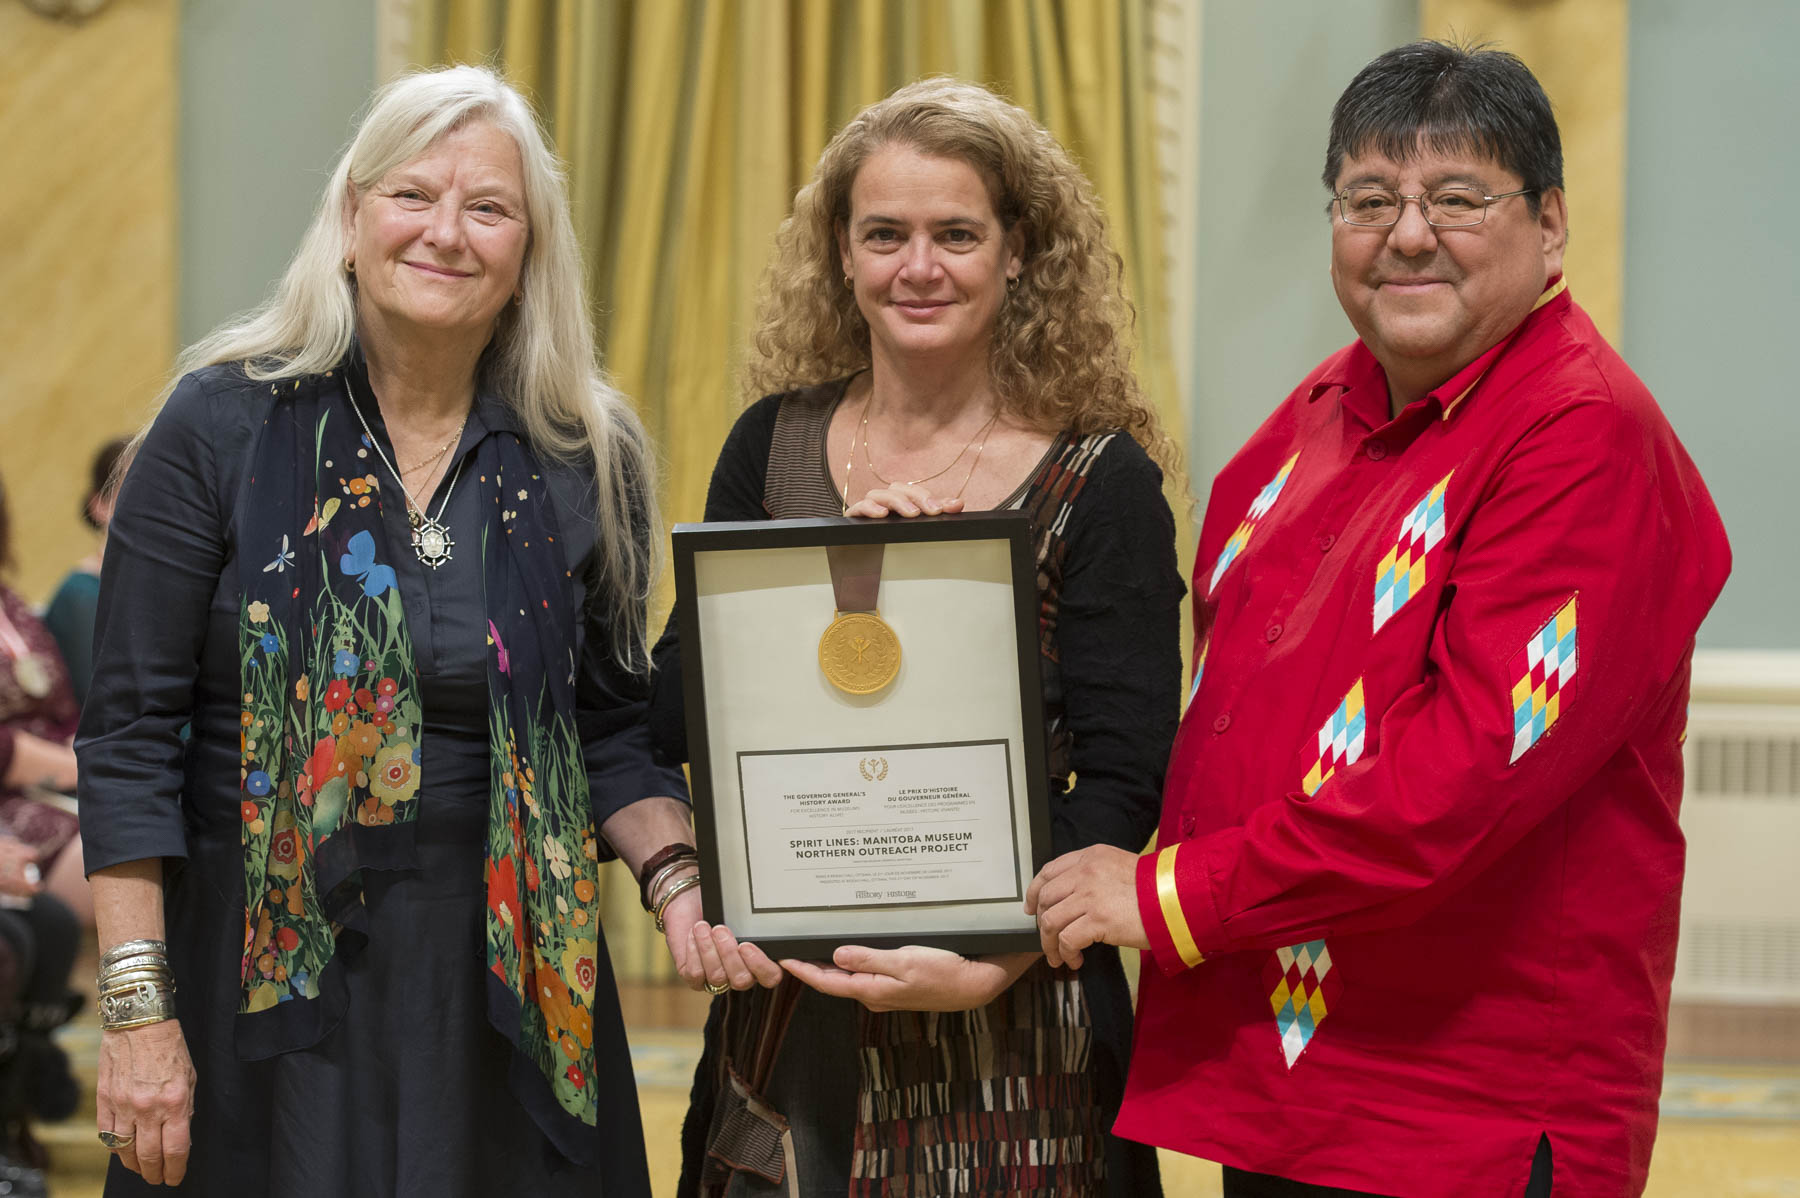 The Governor General's History Award for Excellence in Museums: History Alive! went to Spirit Lines a project from The Manitoba Museum in Winnipeg. This project merges museum content and Indigenous expertise to create two educational kits for use in schools.